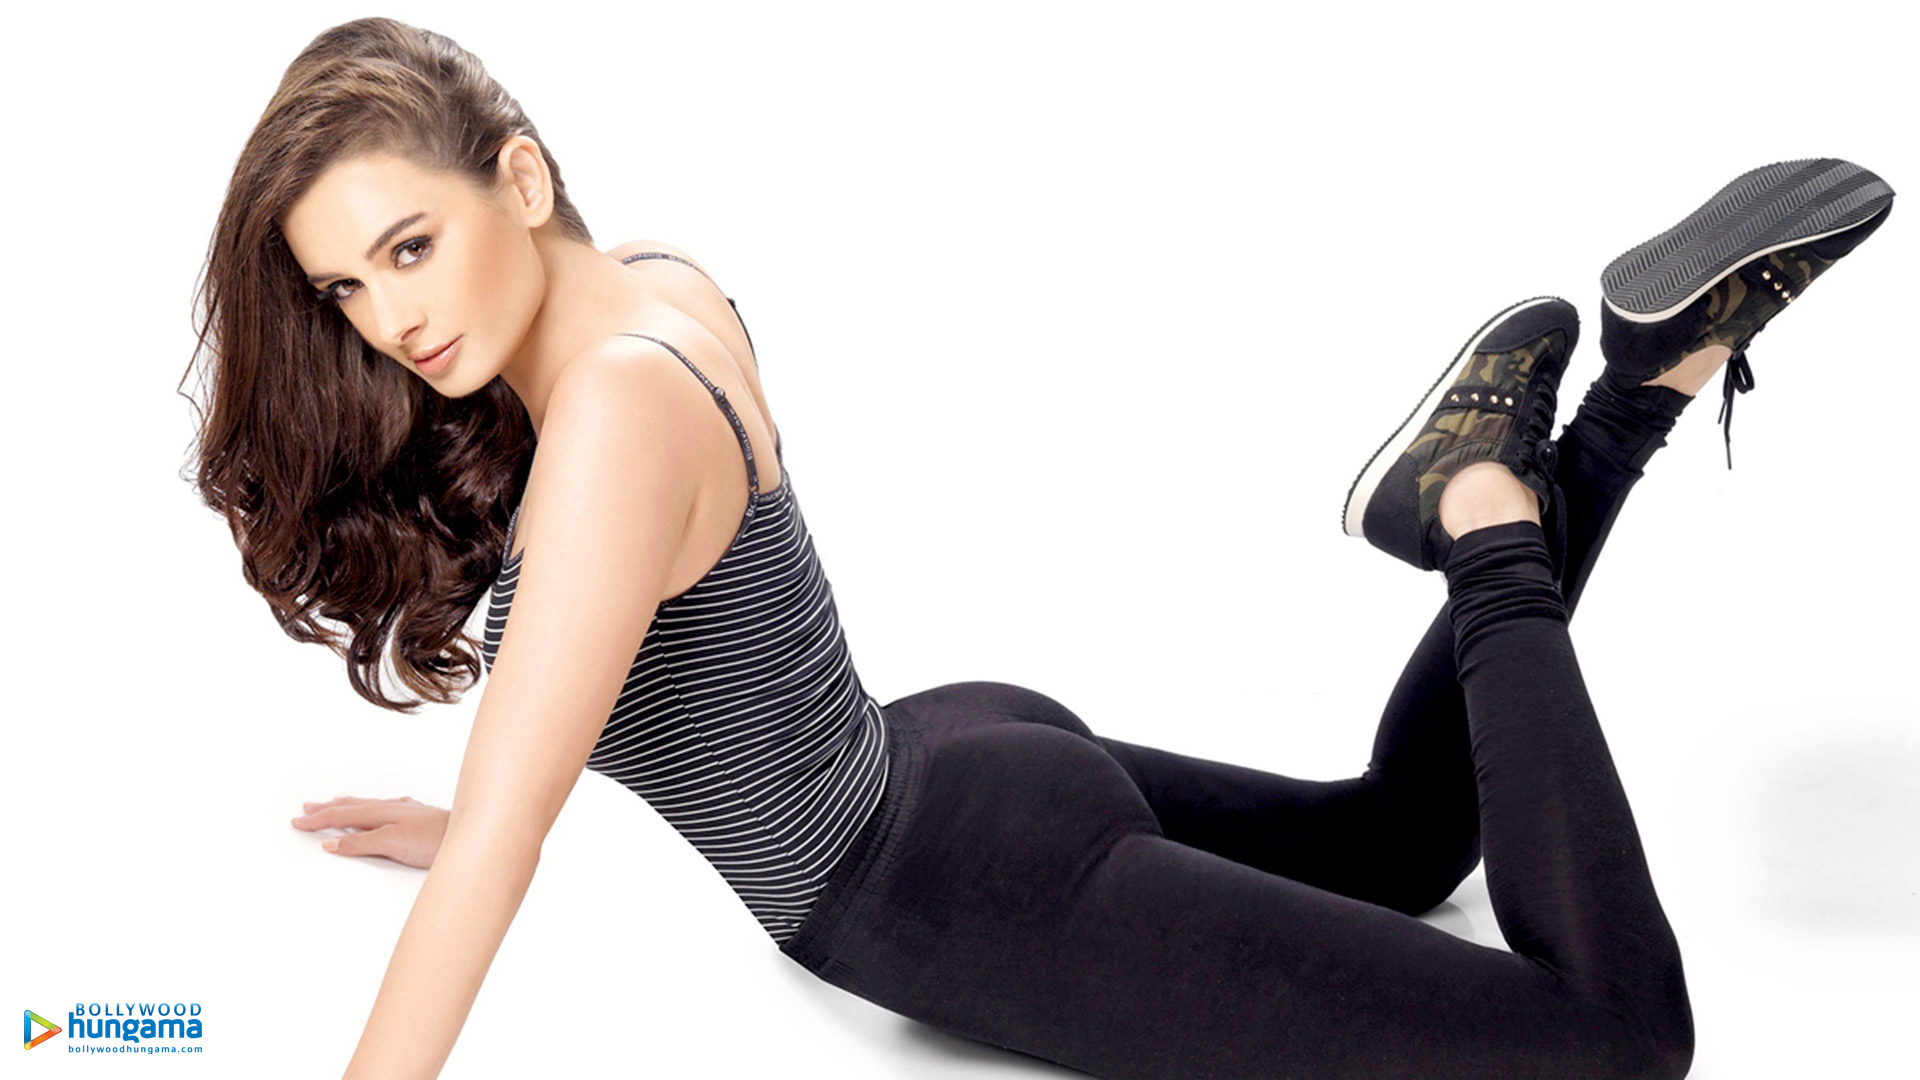 1920x1080 - Evelyn Sharma Wallpapers 23